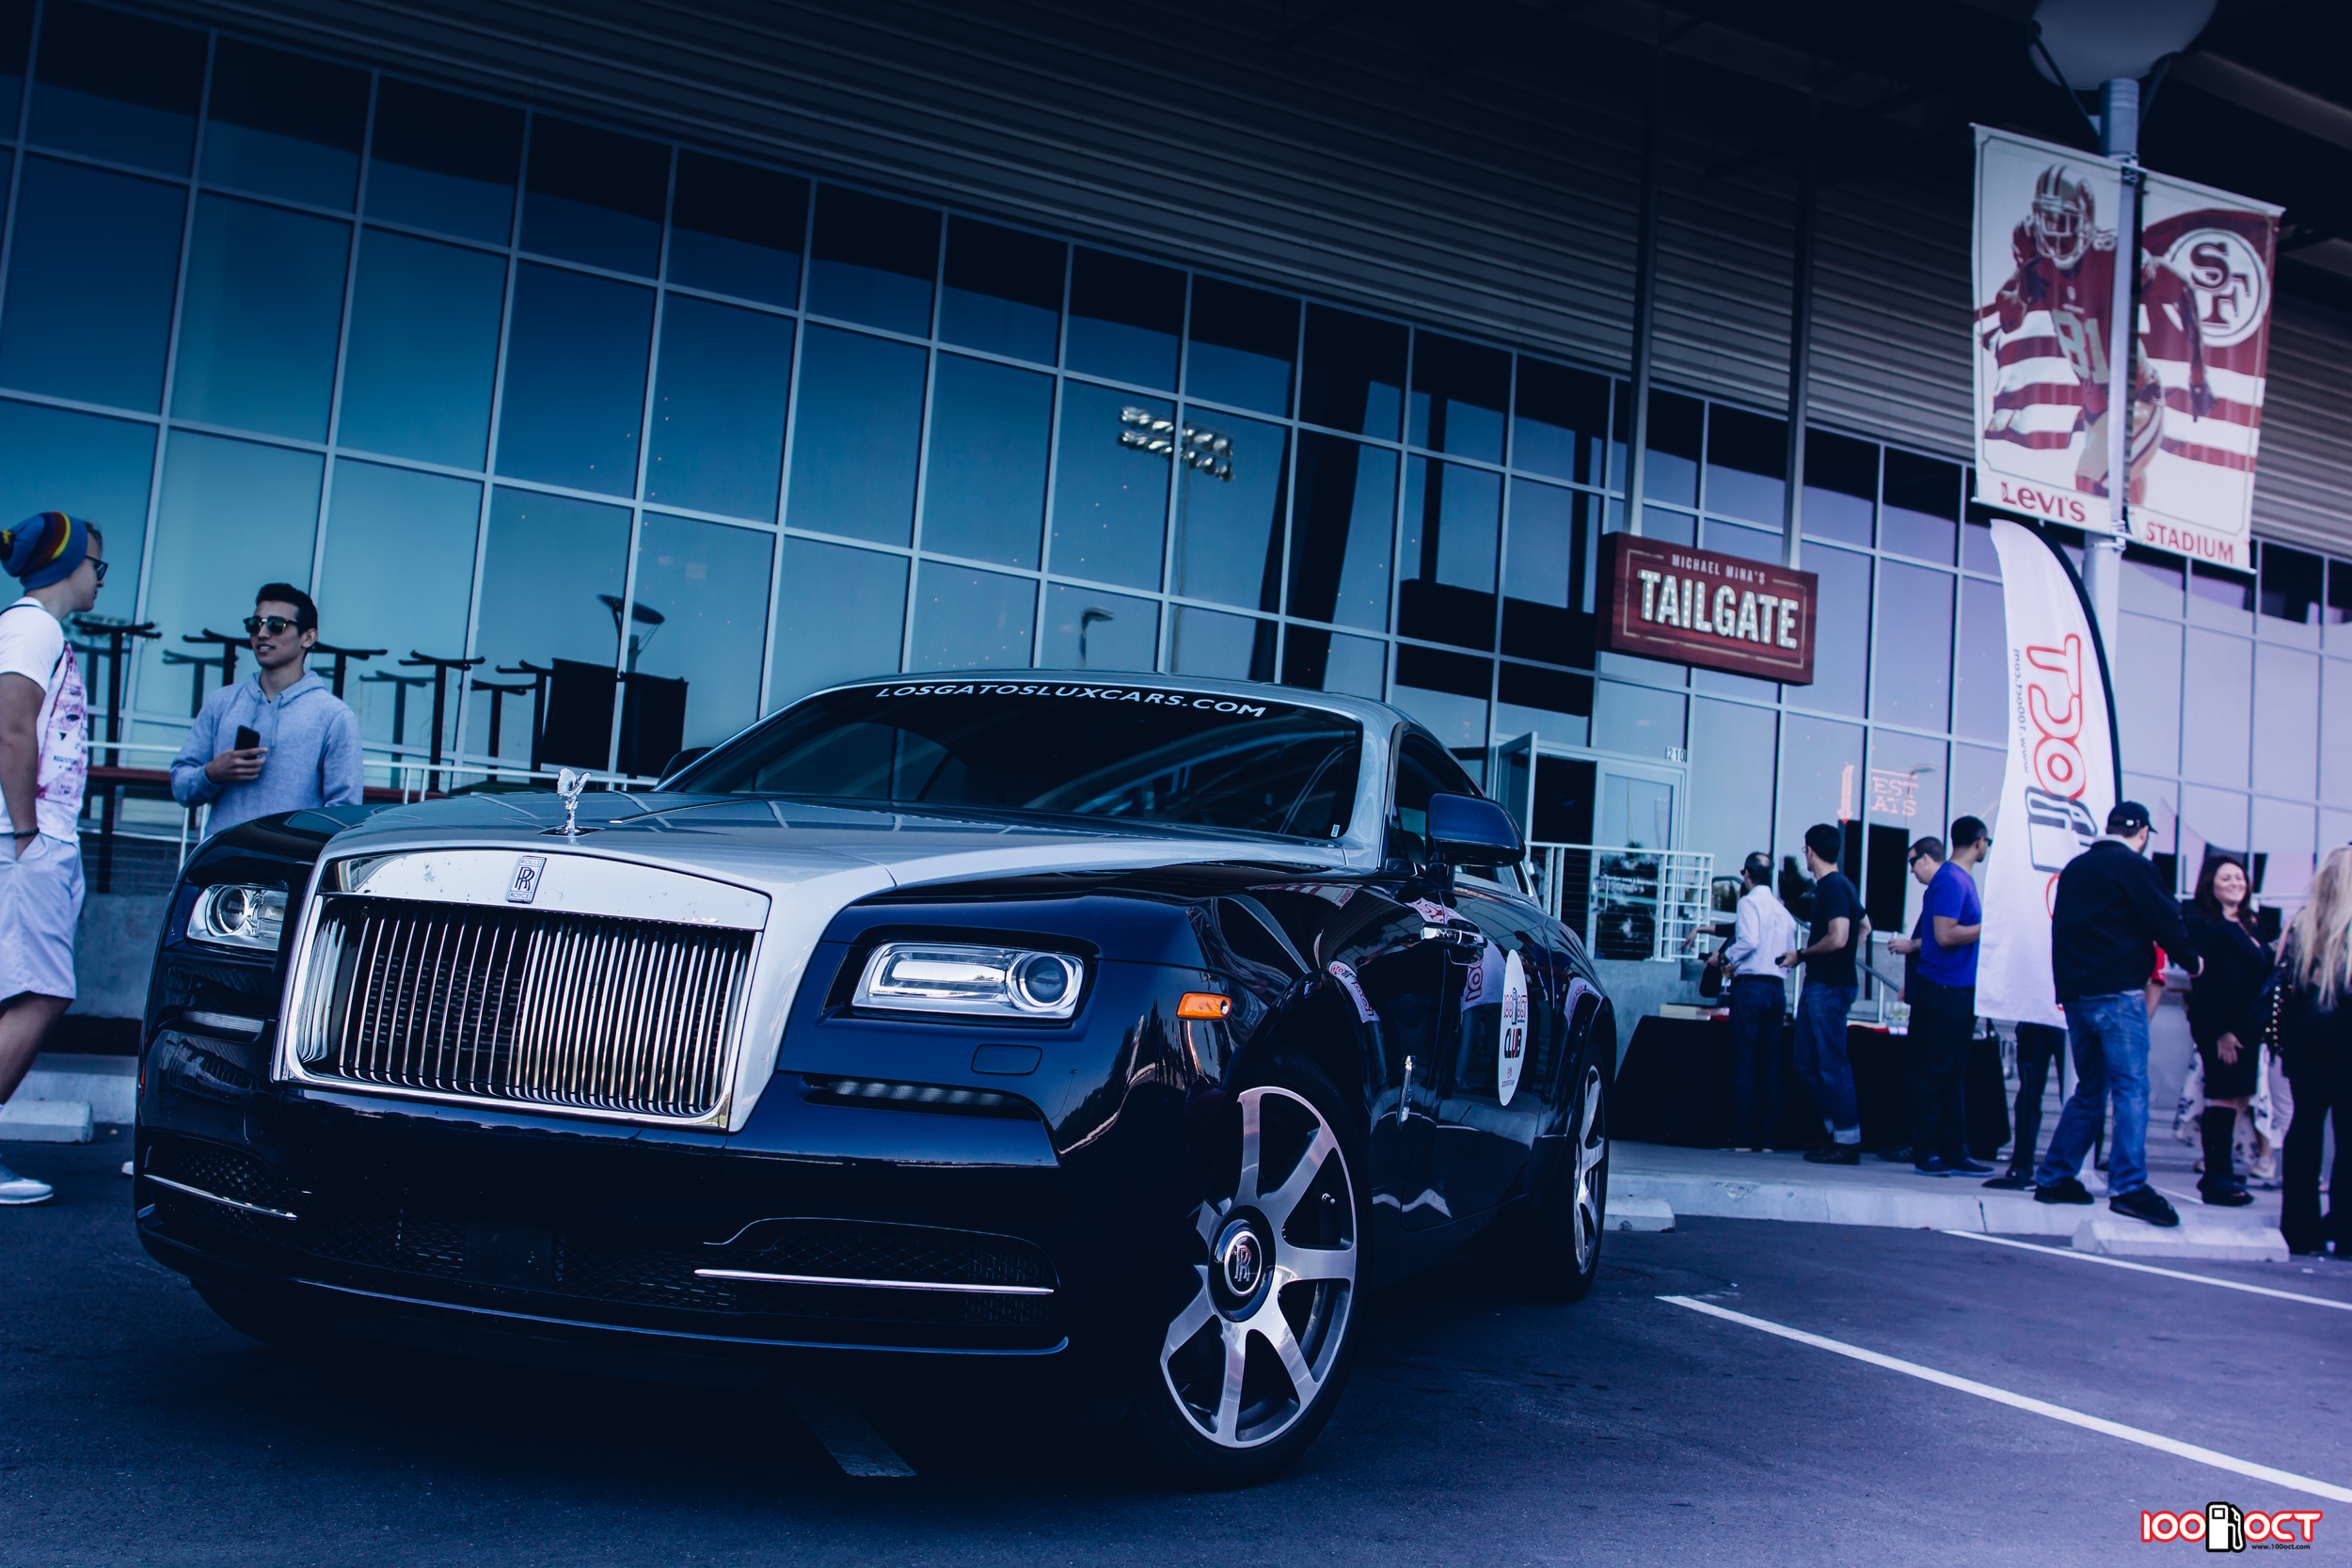 The perfect car for a tailgate party? Only at Michael Mina's!Credits: Dayne Dyer.